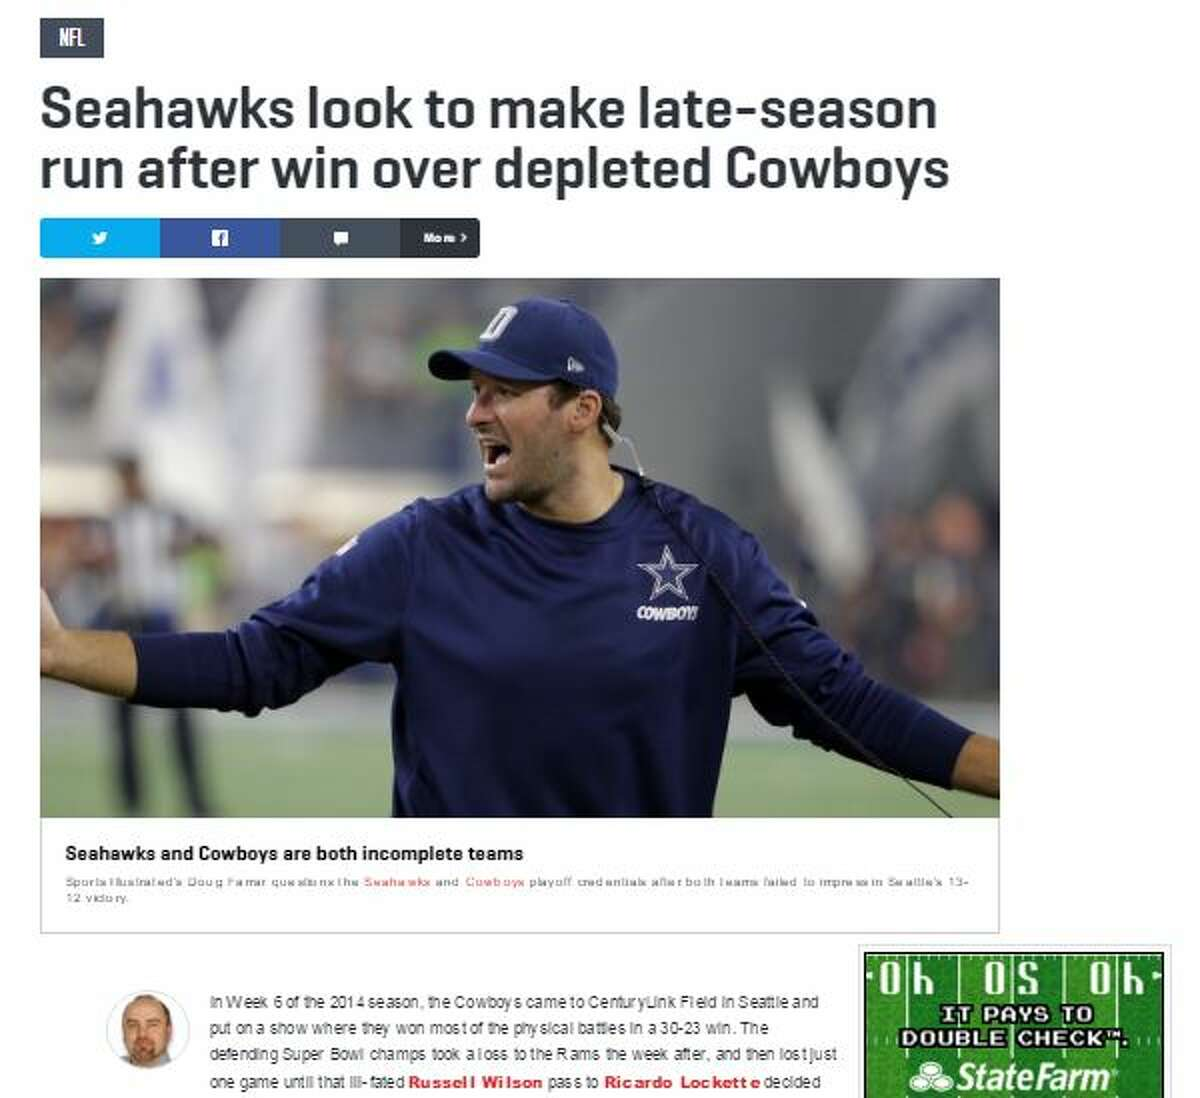 Sports Illustrated's Doug Farrar Even after the Seahawks evened their record with the road win, Farrar had some lingering questions about the team's ability to make a second-half surge up the standings.